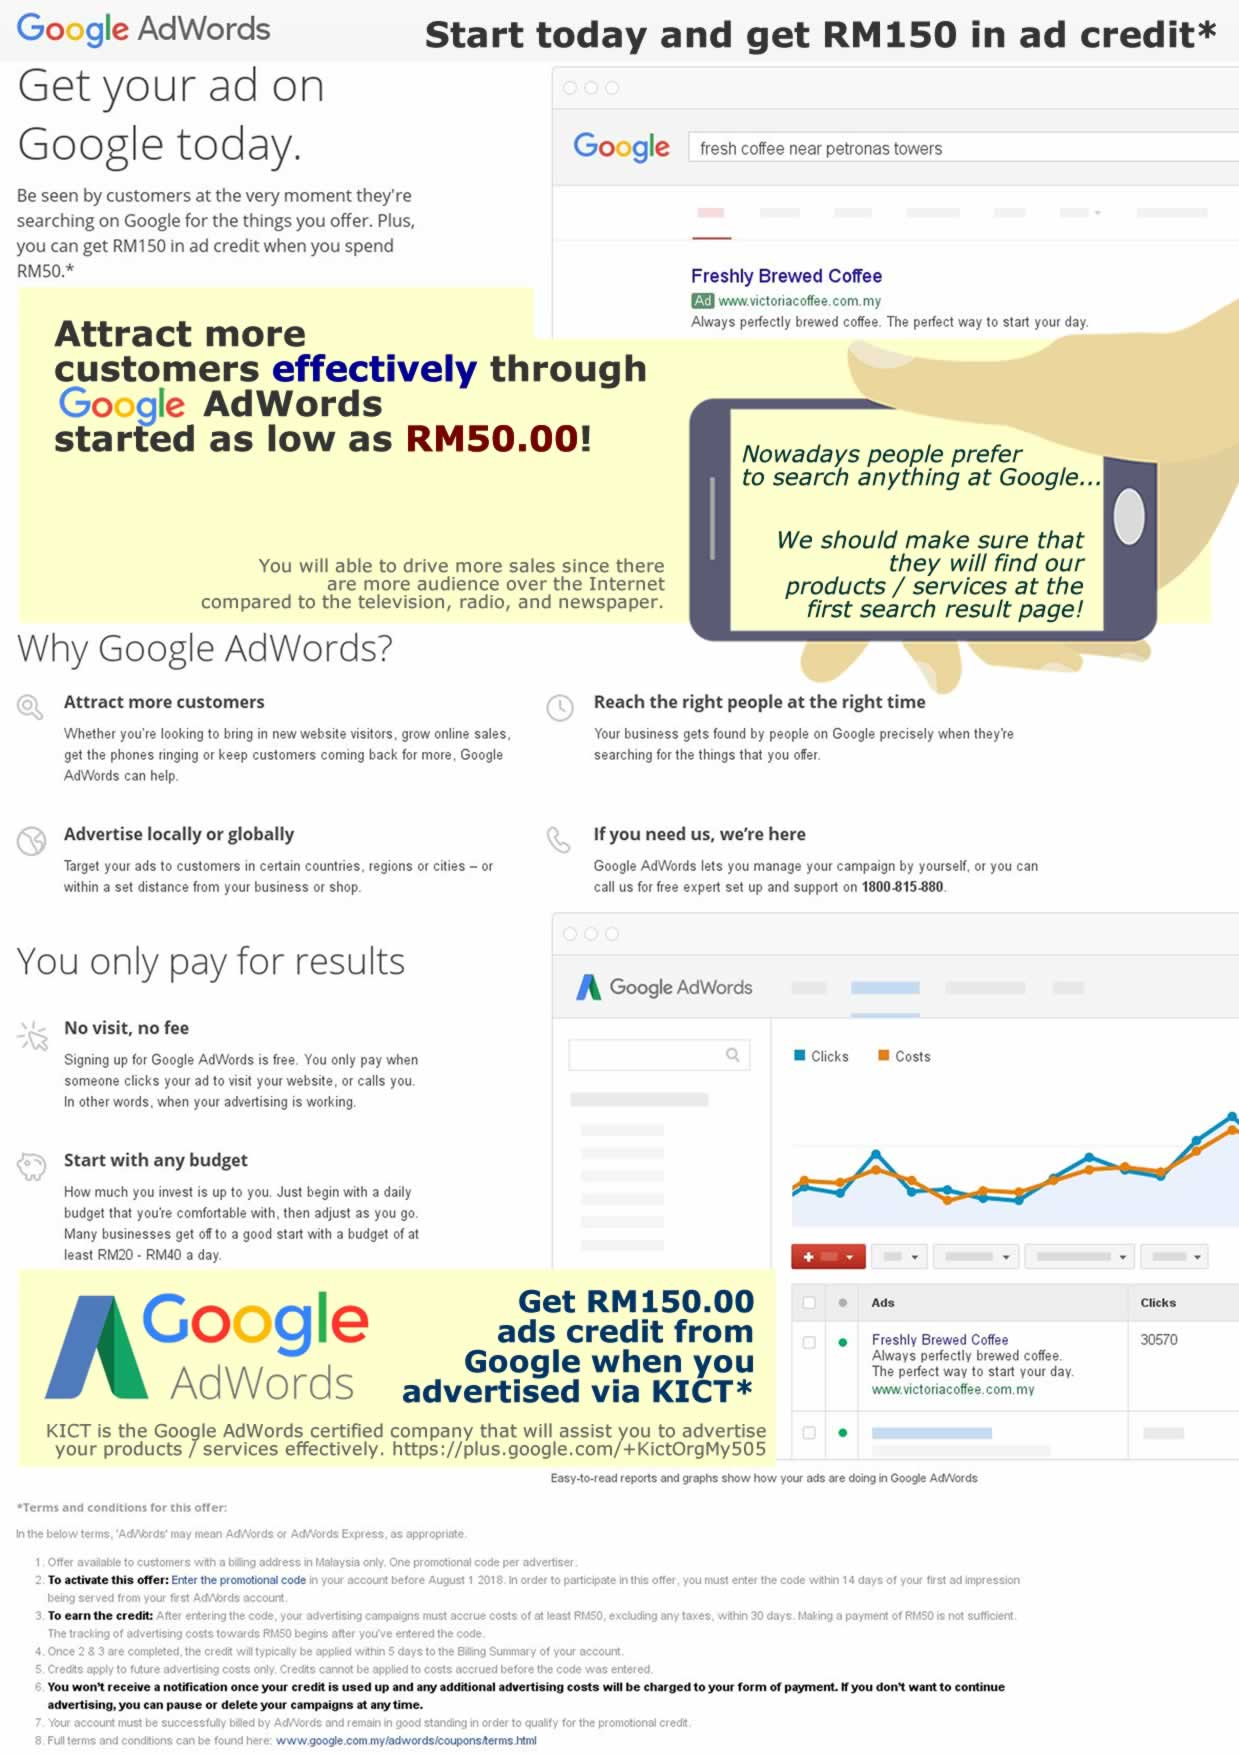 Google AdWords spend RM50 and get RM150